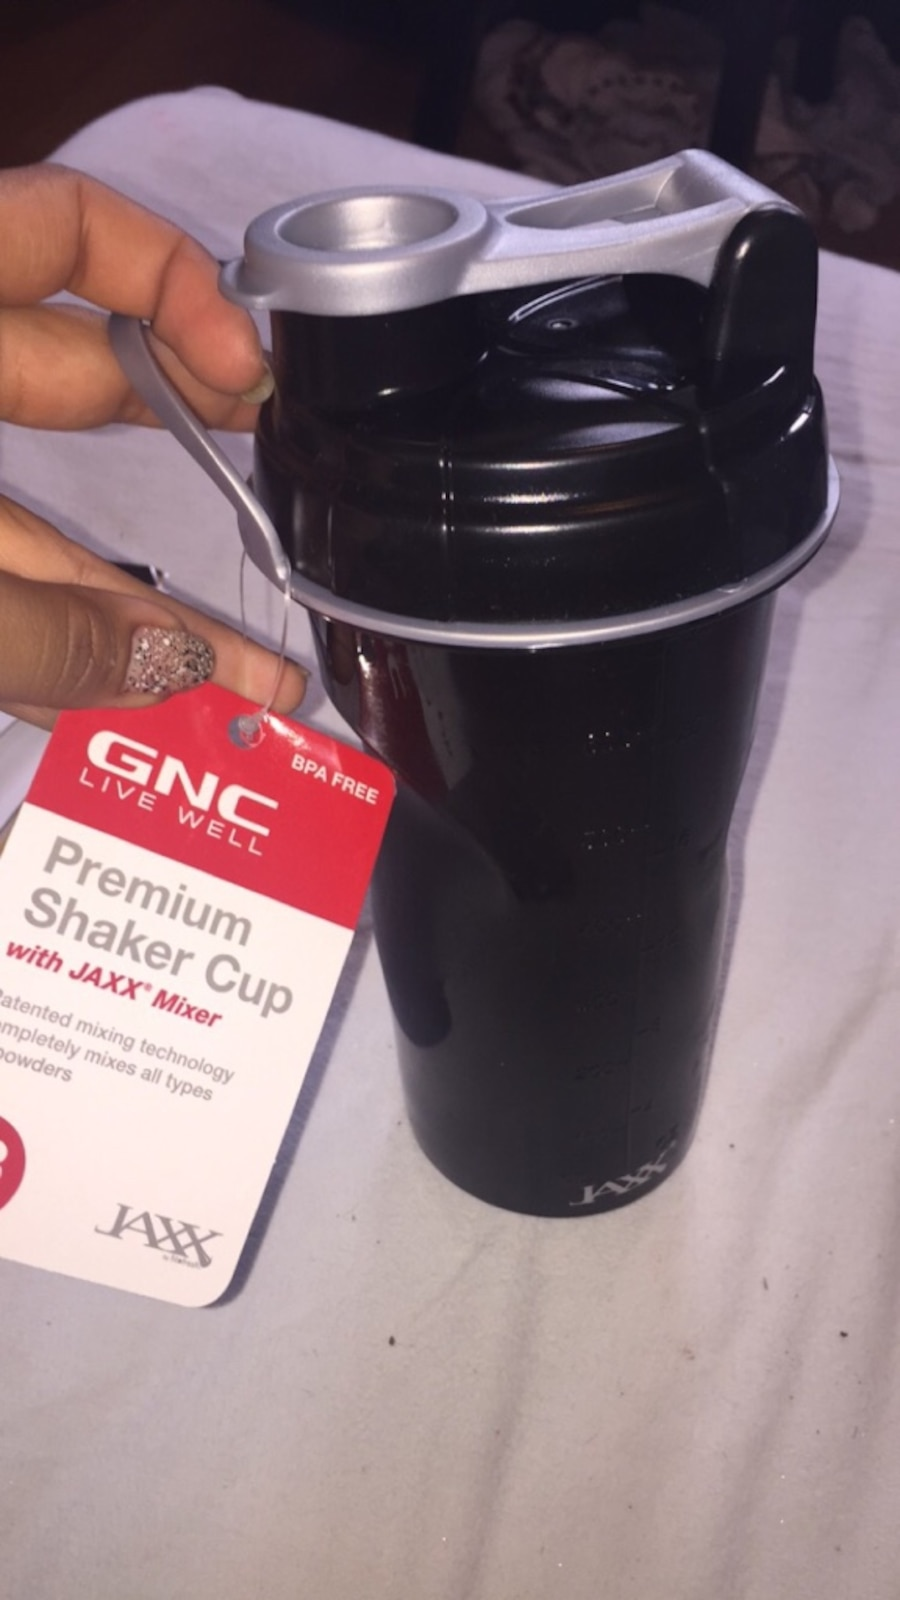 GNC PREMIUM SHAKER CUP  - New Westminster